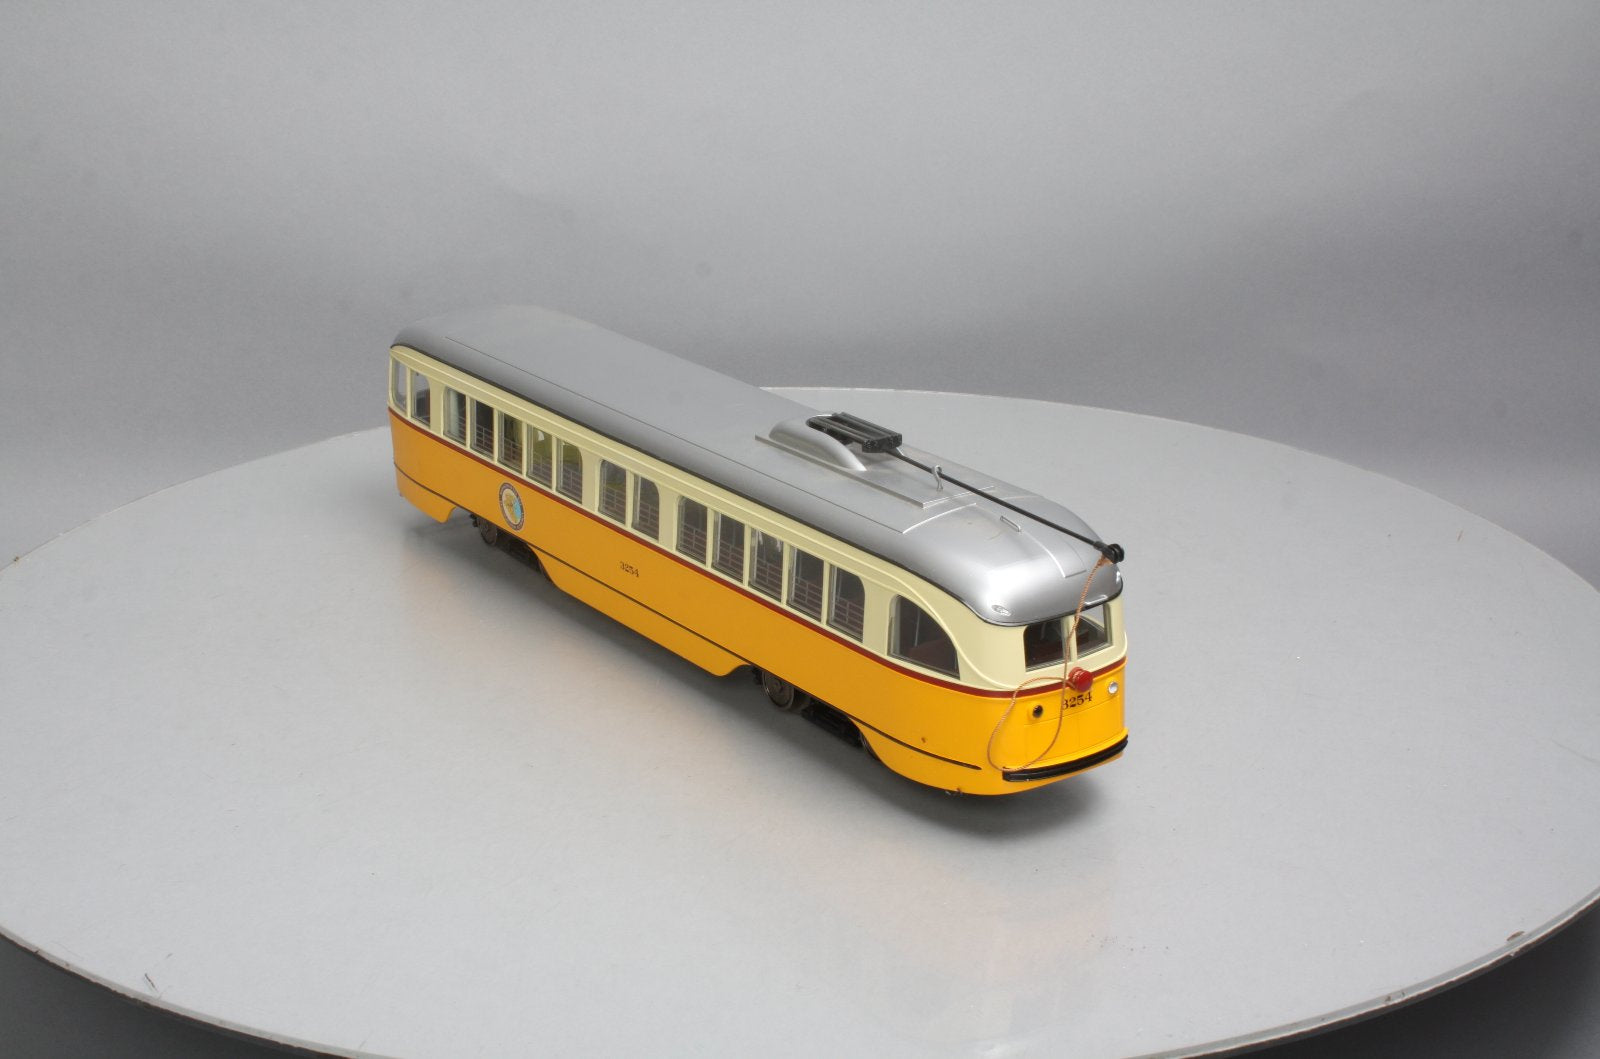 Aristo-Craft 23303 G MBTA Boston PCC Trolley – Trainz